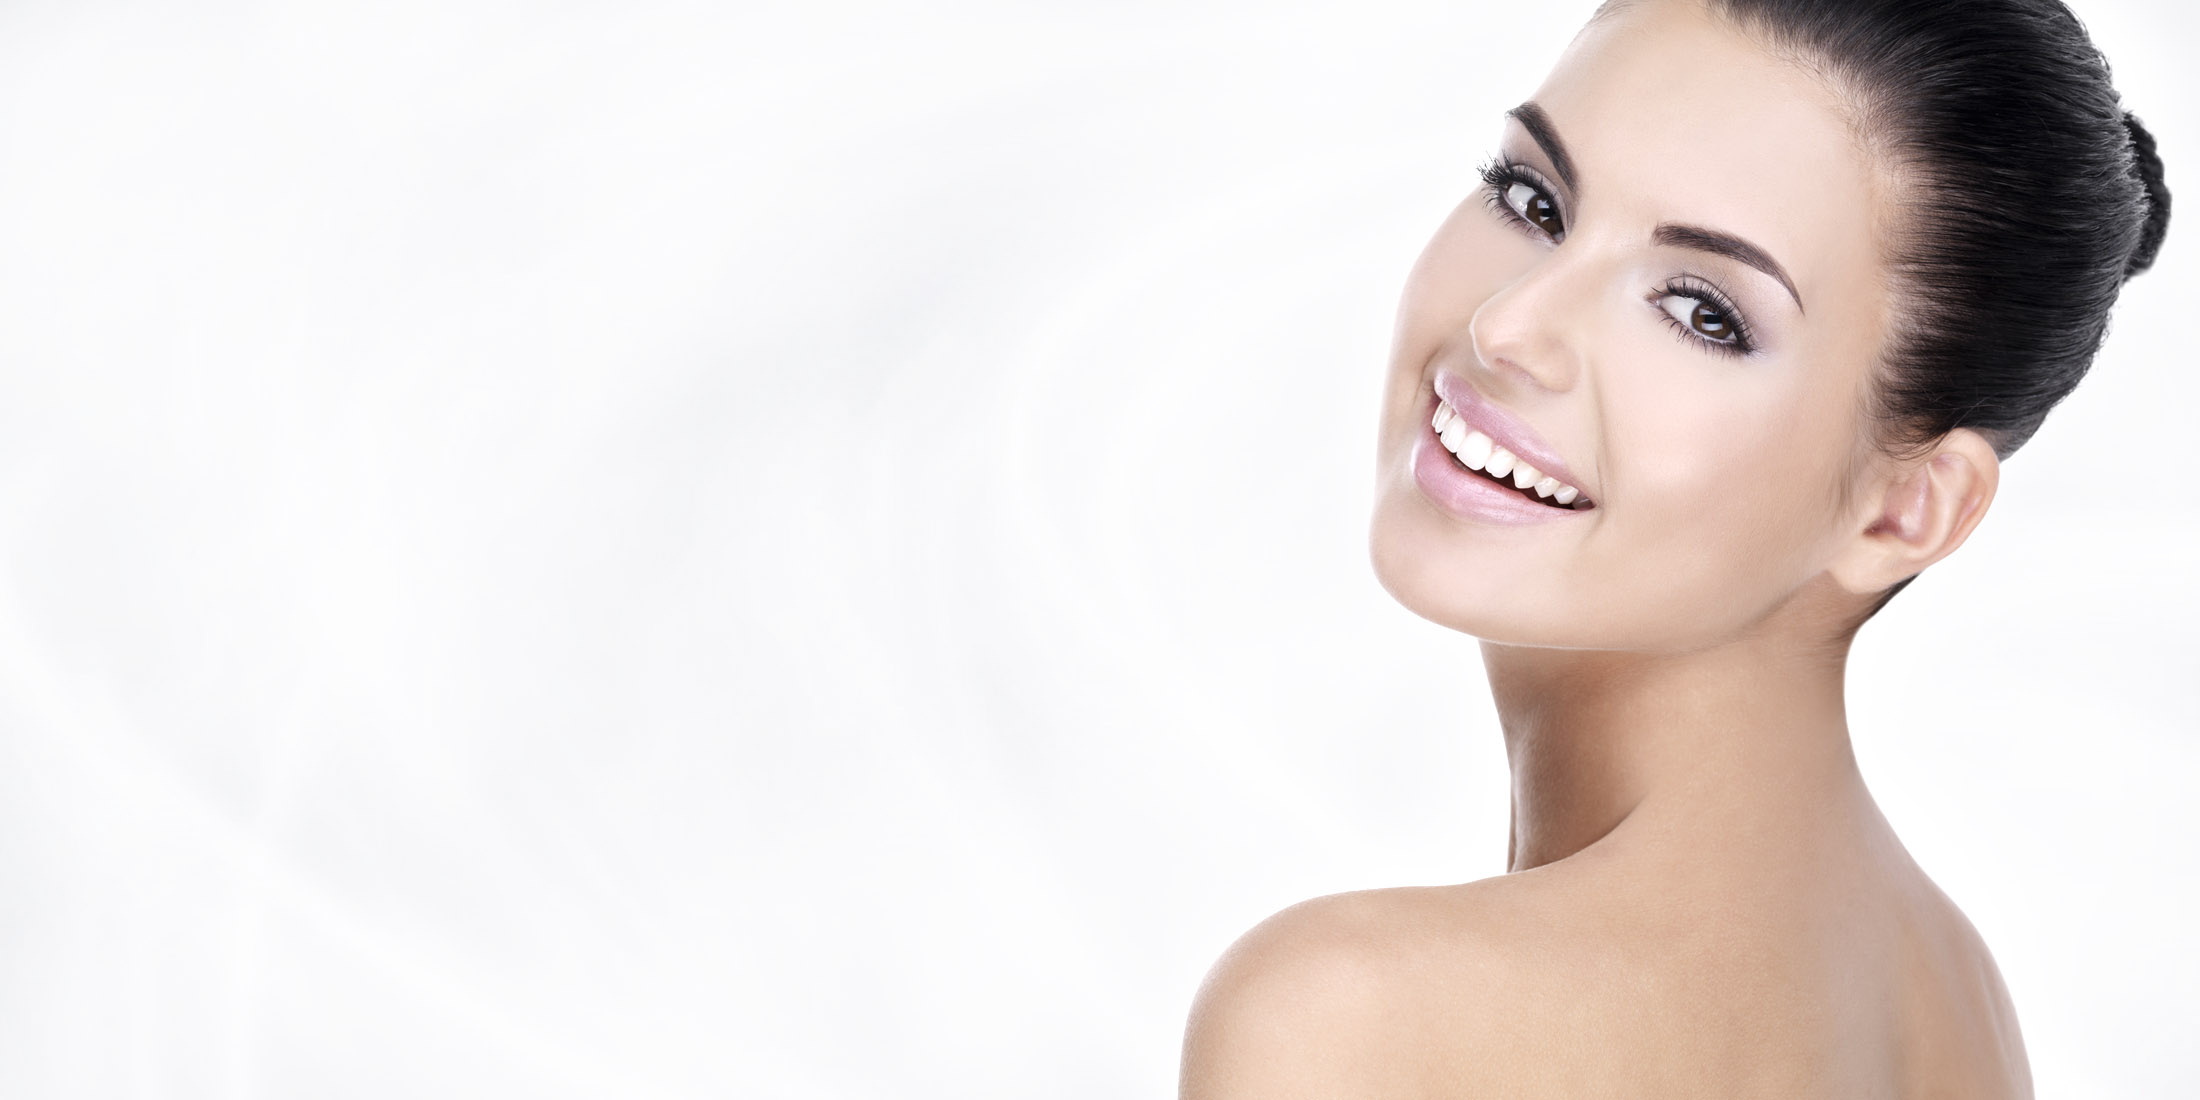 ENHANCING YOUR APPEARANCE WITH SKIN REJUVENATION AND RESURFACING